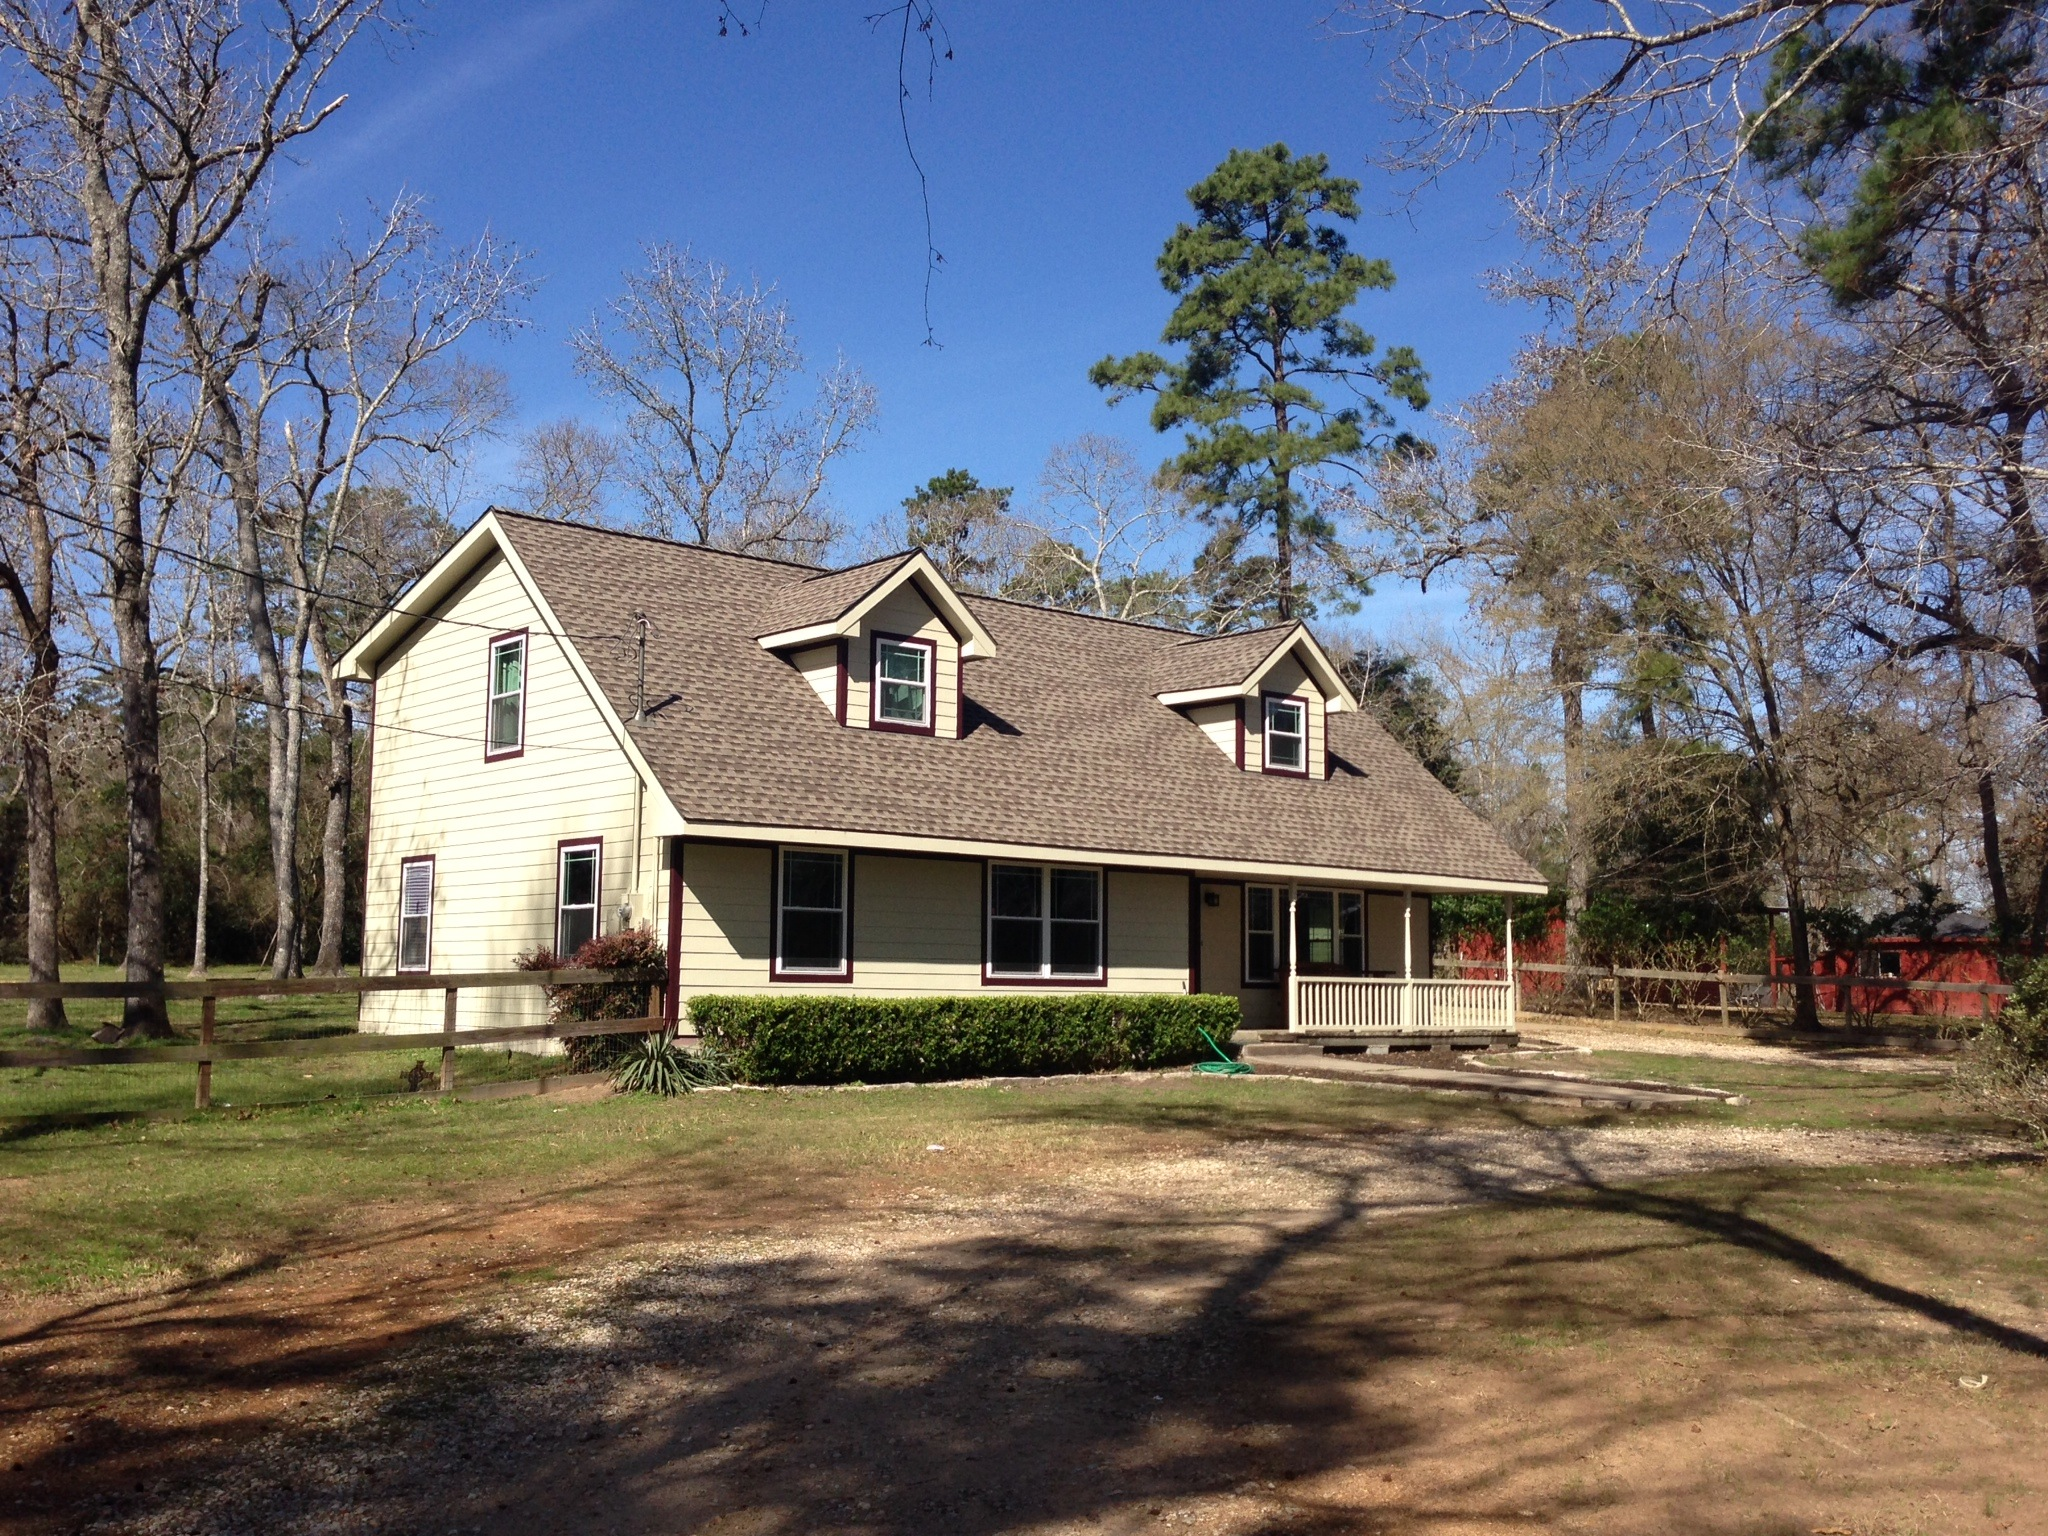 This home received a full new roof, windows, and siding from us!